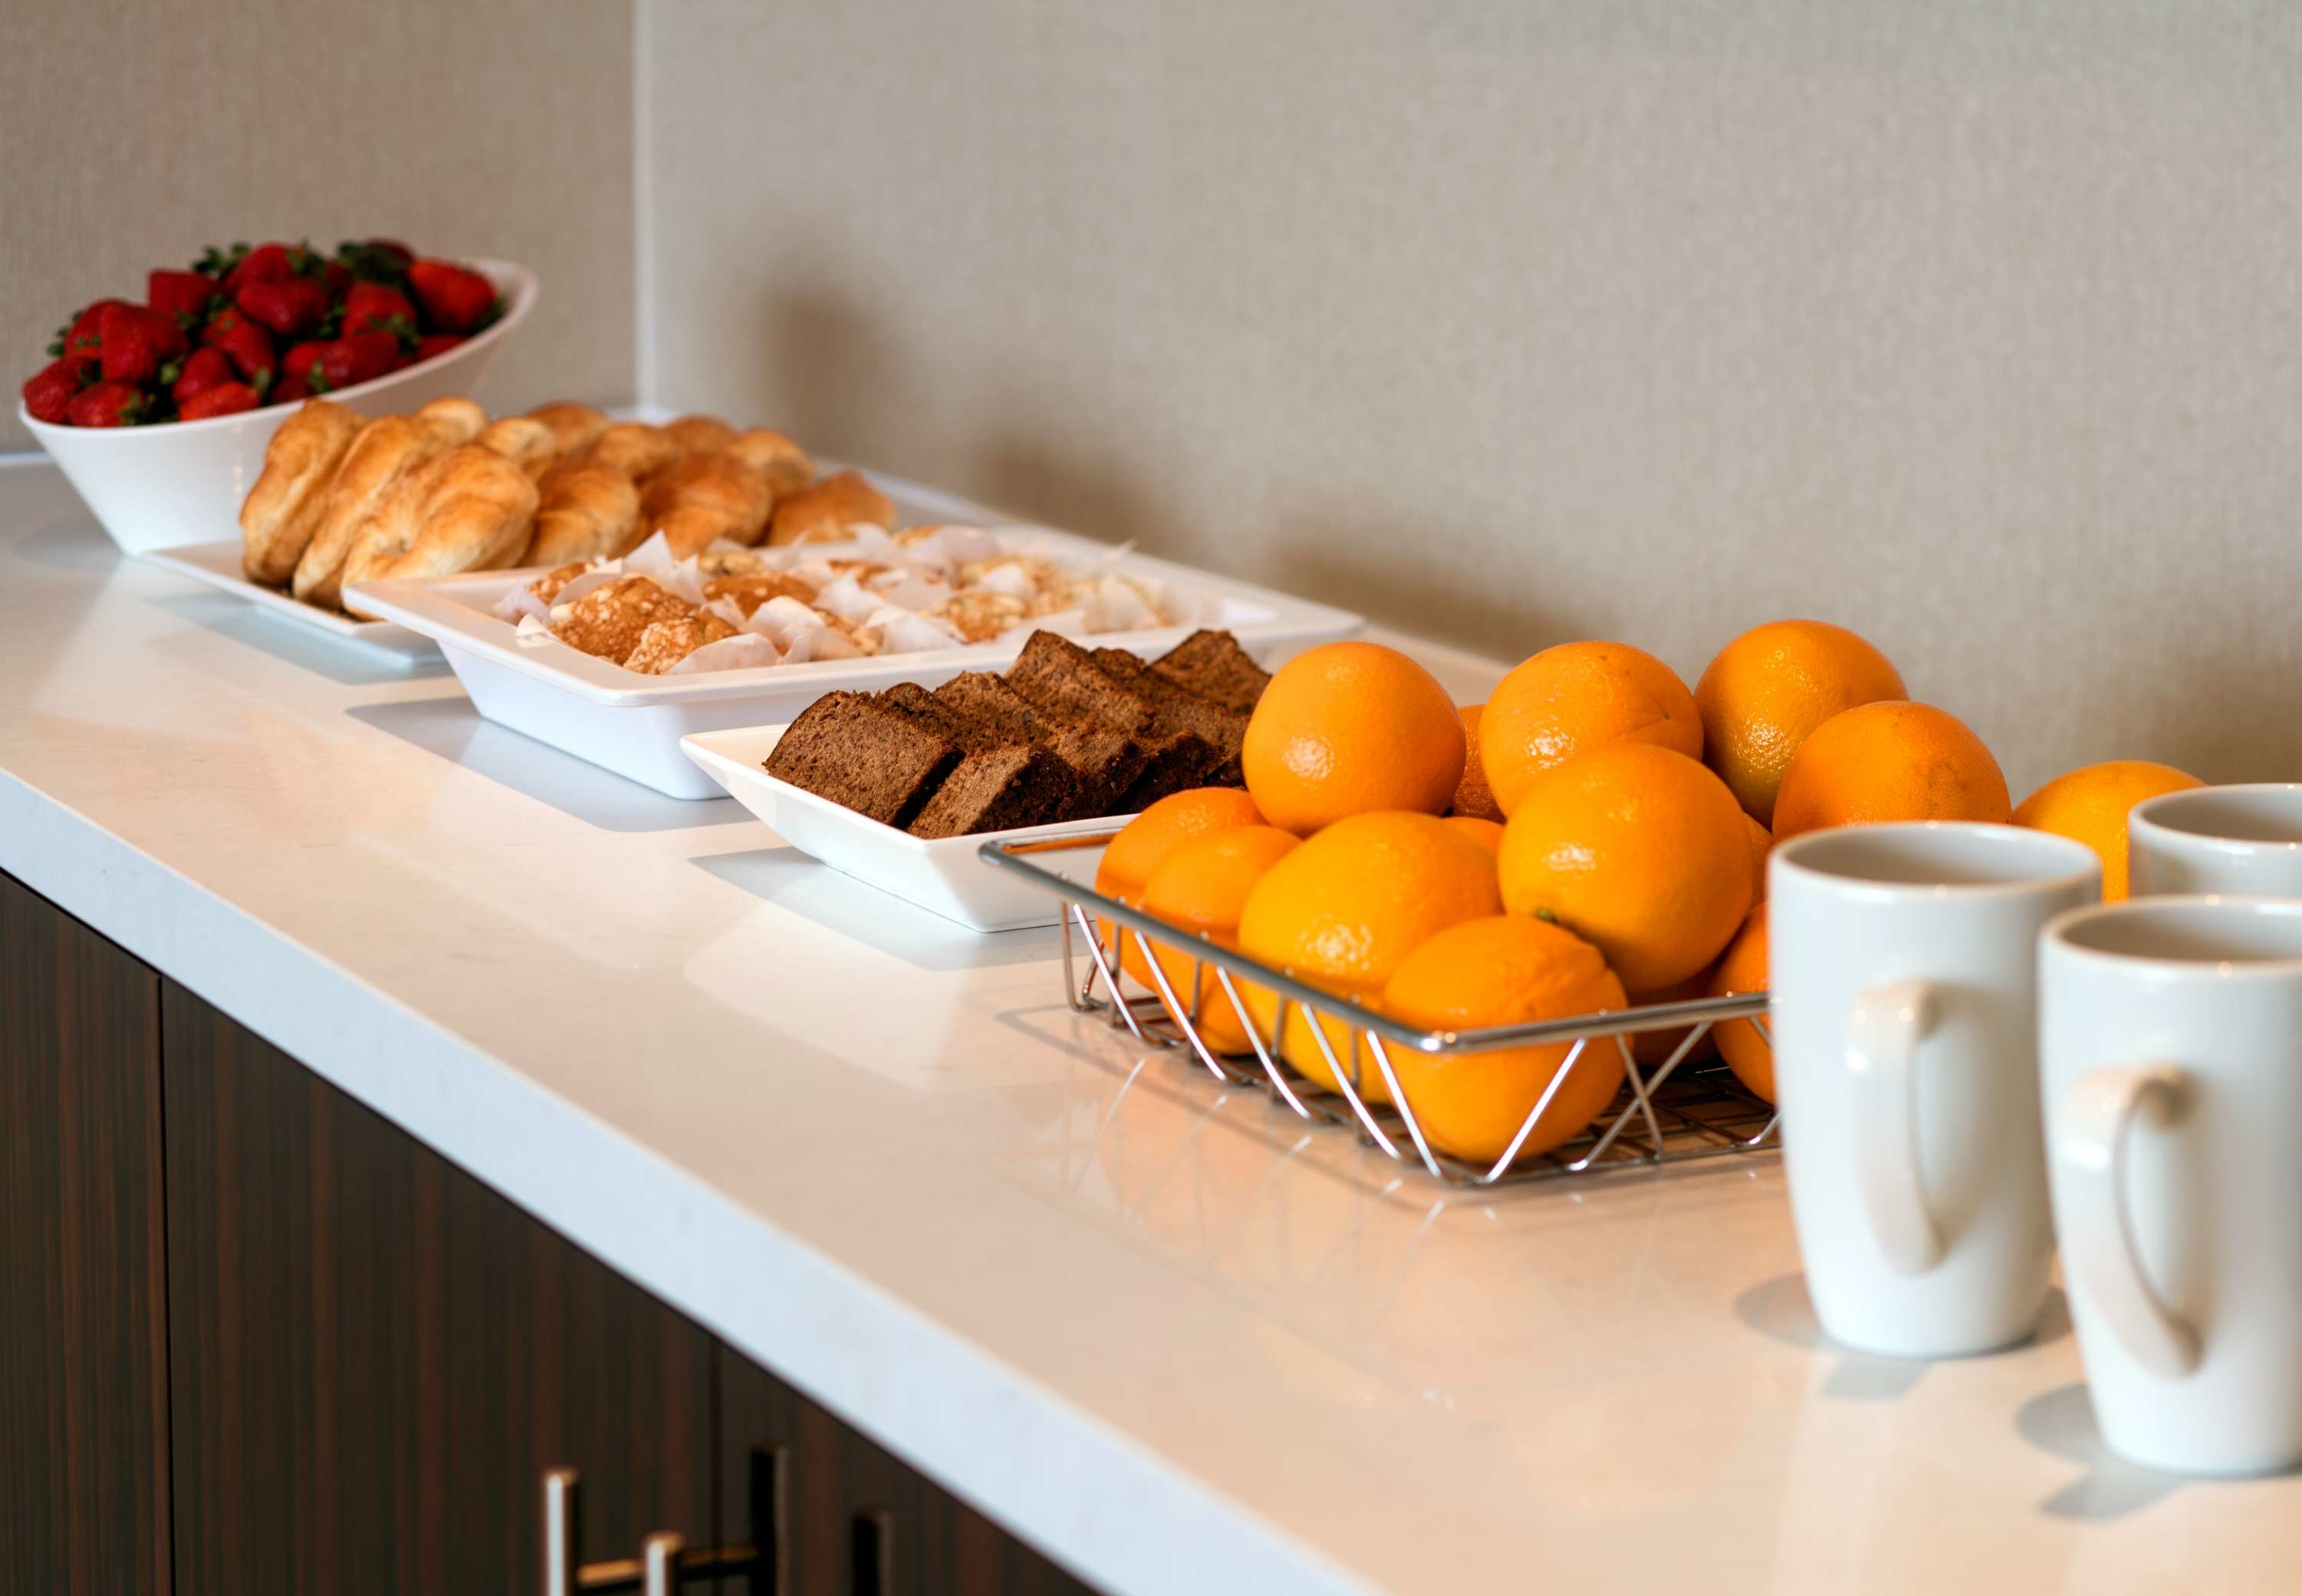 Meeting Room Catering - Meeting and event attendees can enjoy a delicious breakfast by utilizing our professional catering. Book a meeting space at our Burbank hotel today!